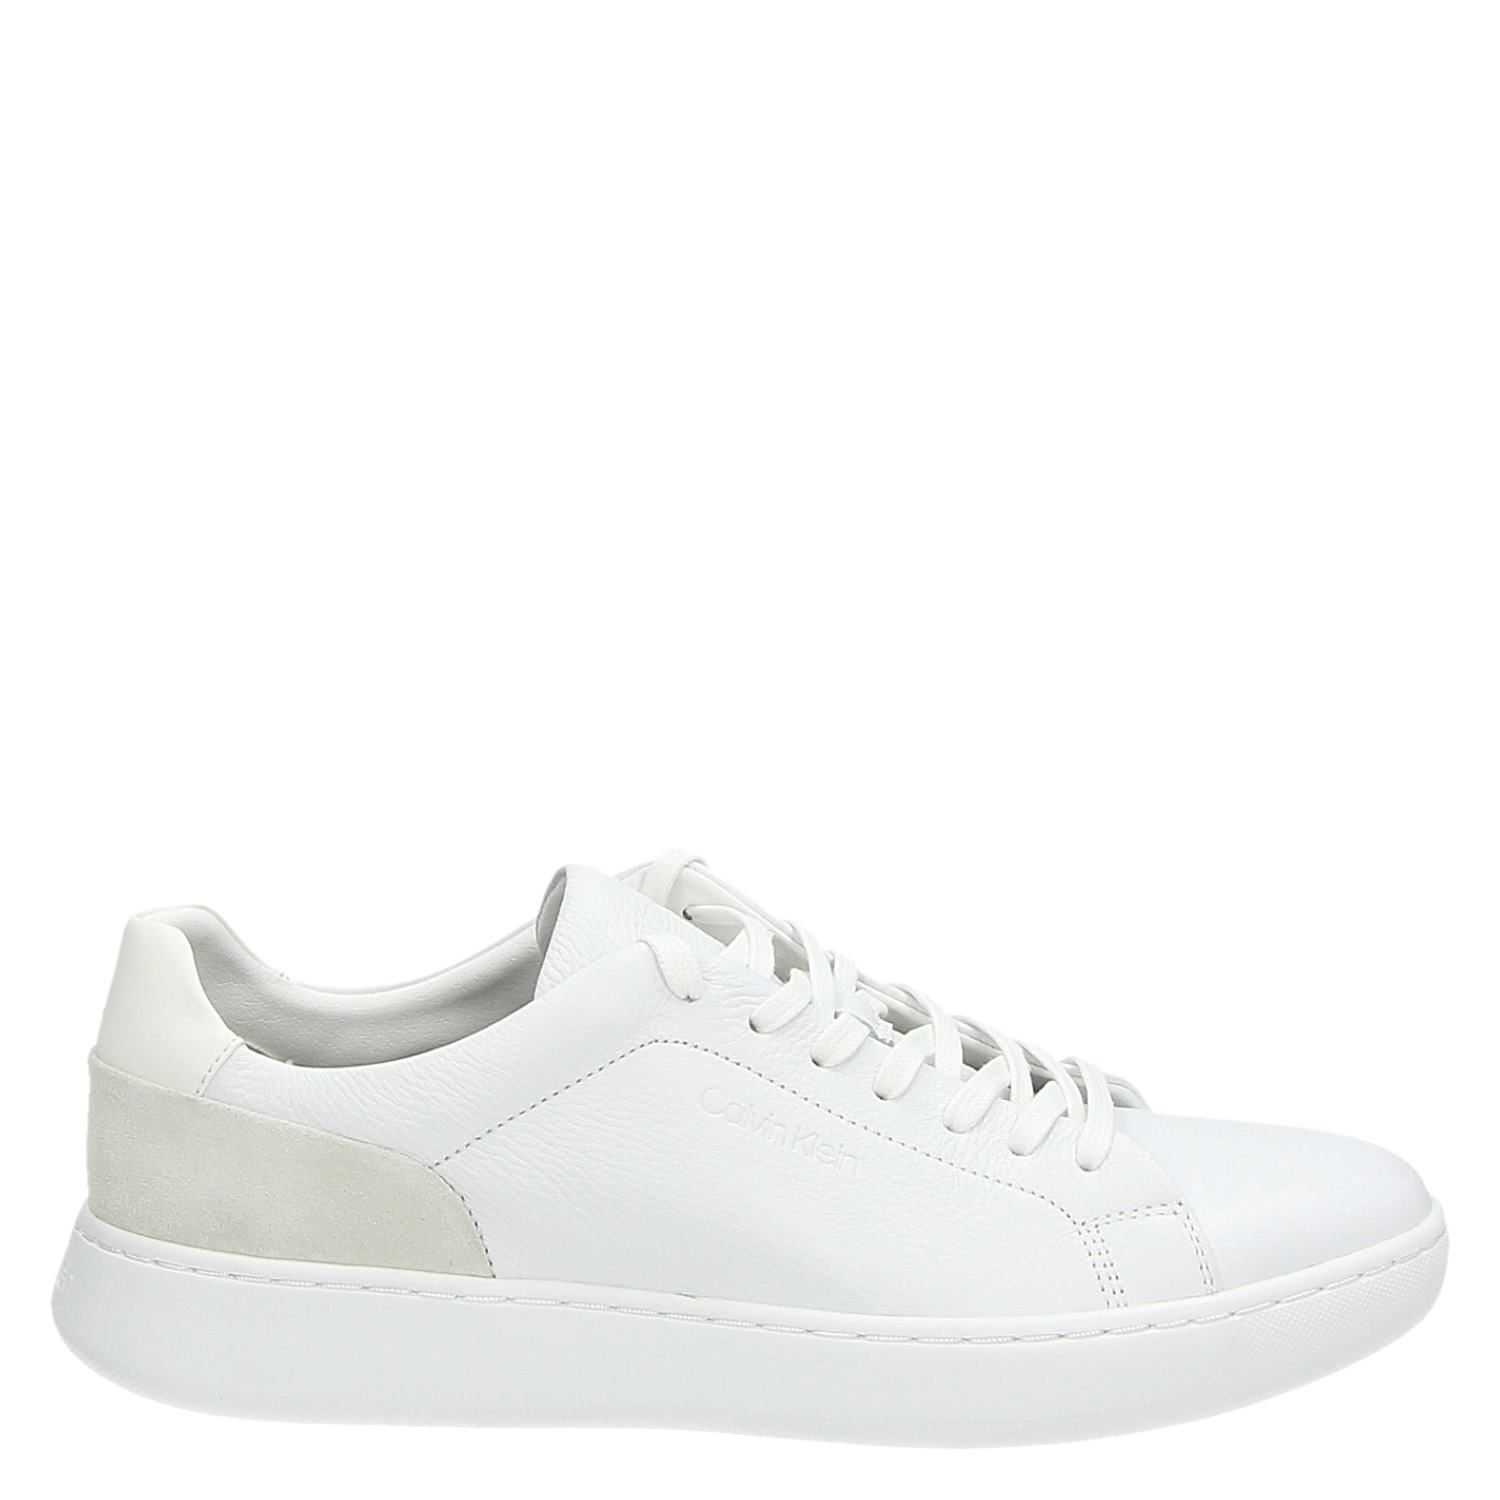 Fuego Wit Calvin Klein Sneakers Heren Lage Y5Pqwv